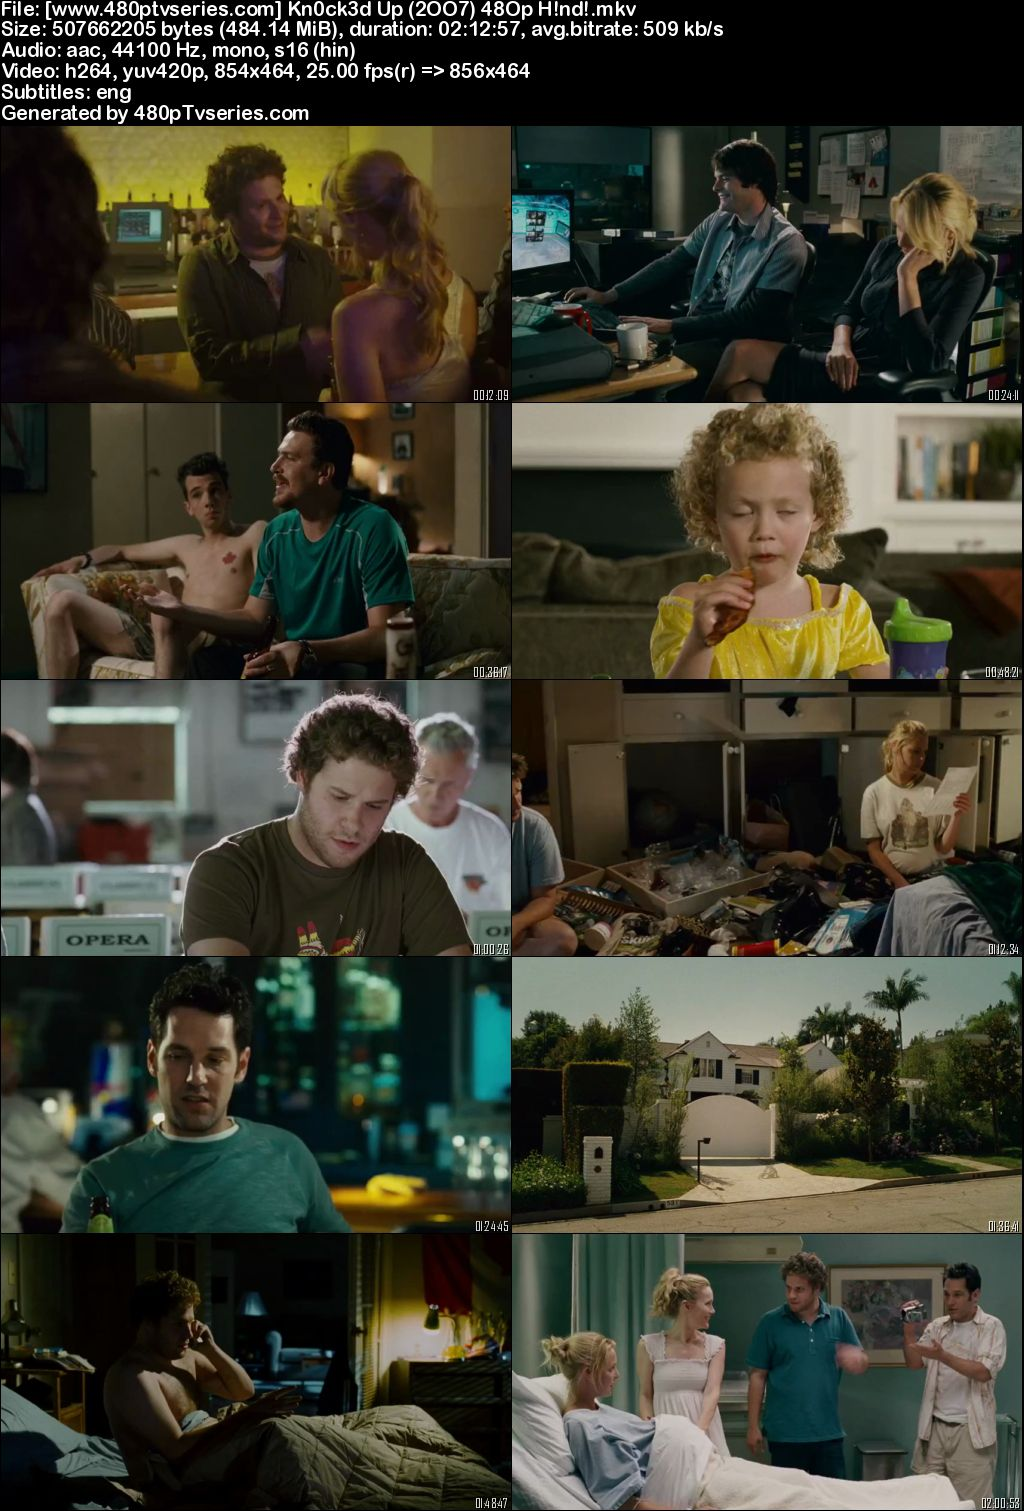 knocked up movie download in 480p